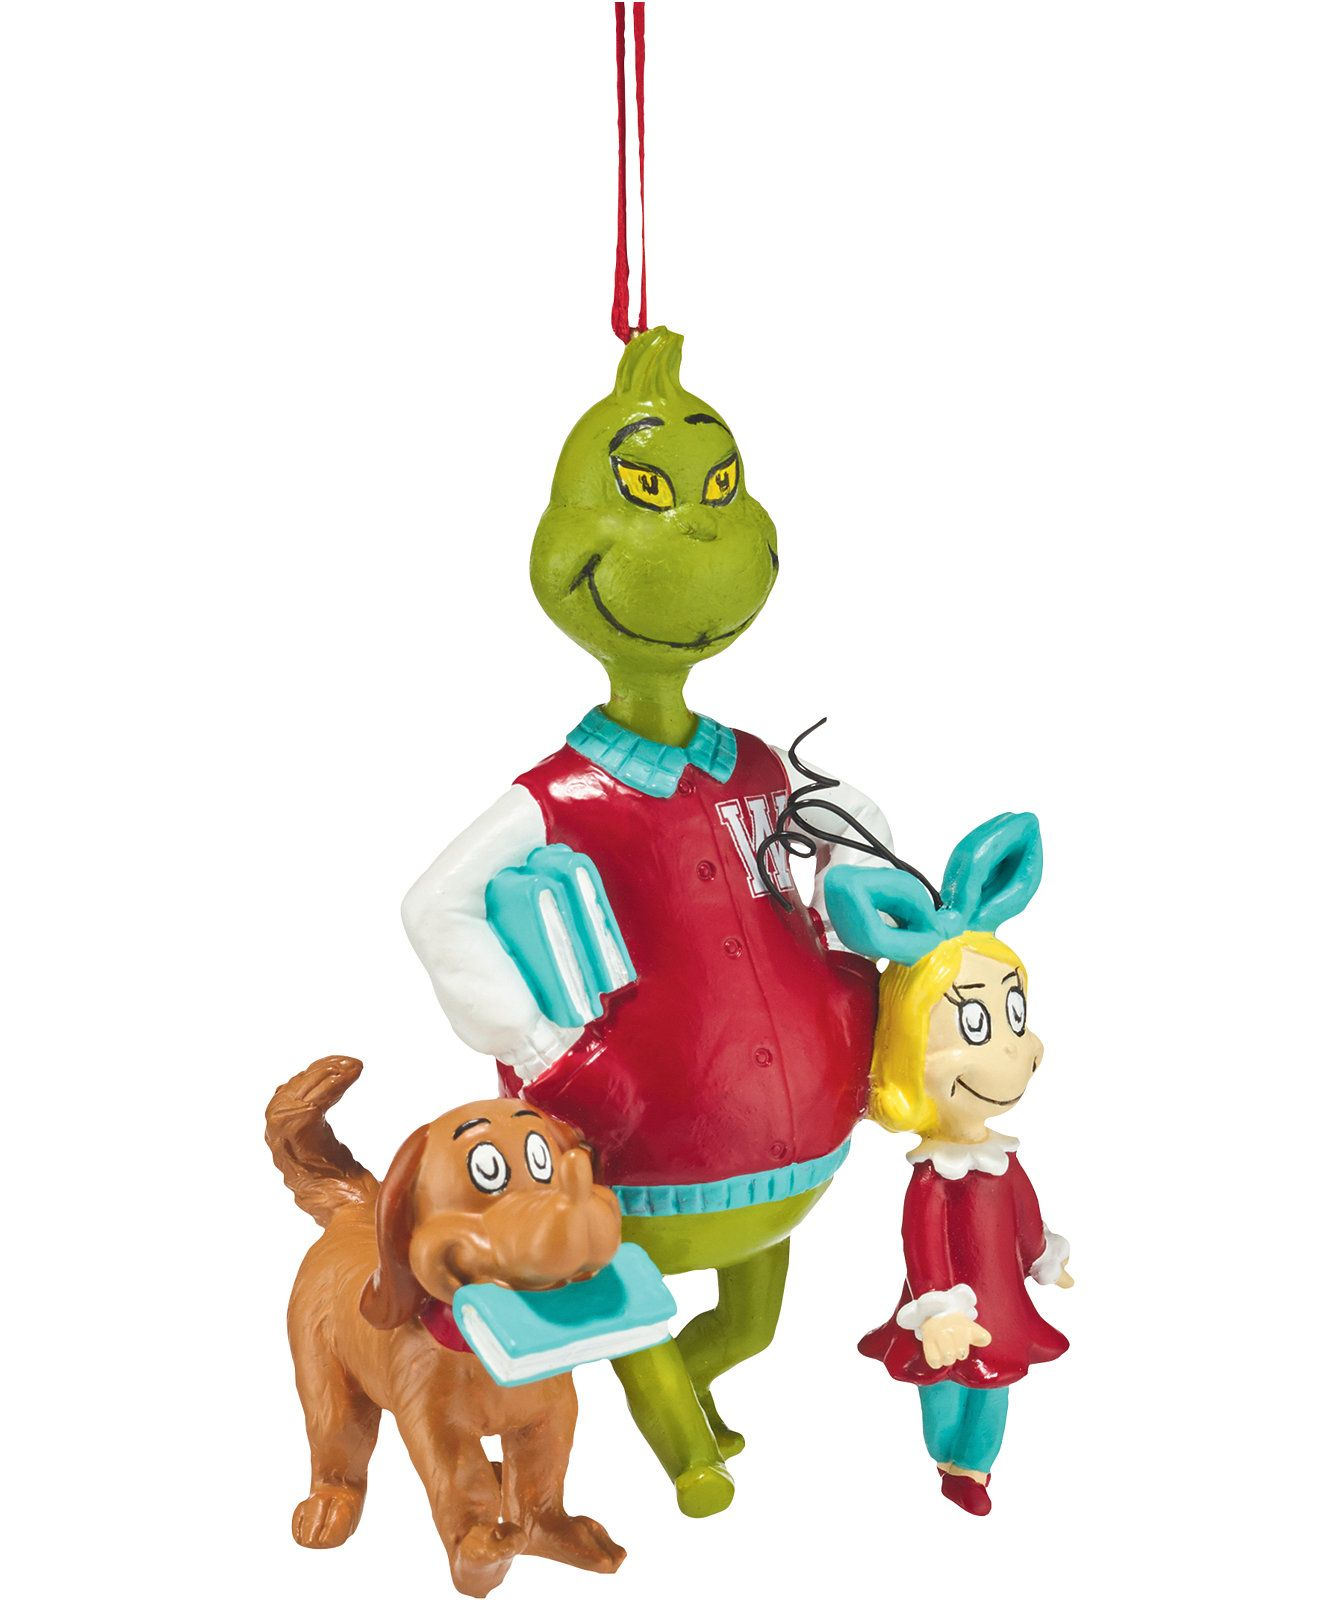 Department 56 Grinch Ornaments Collection Walking To Class Ornament